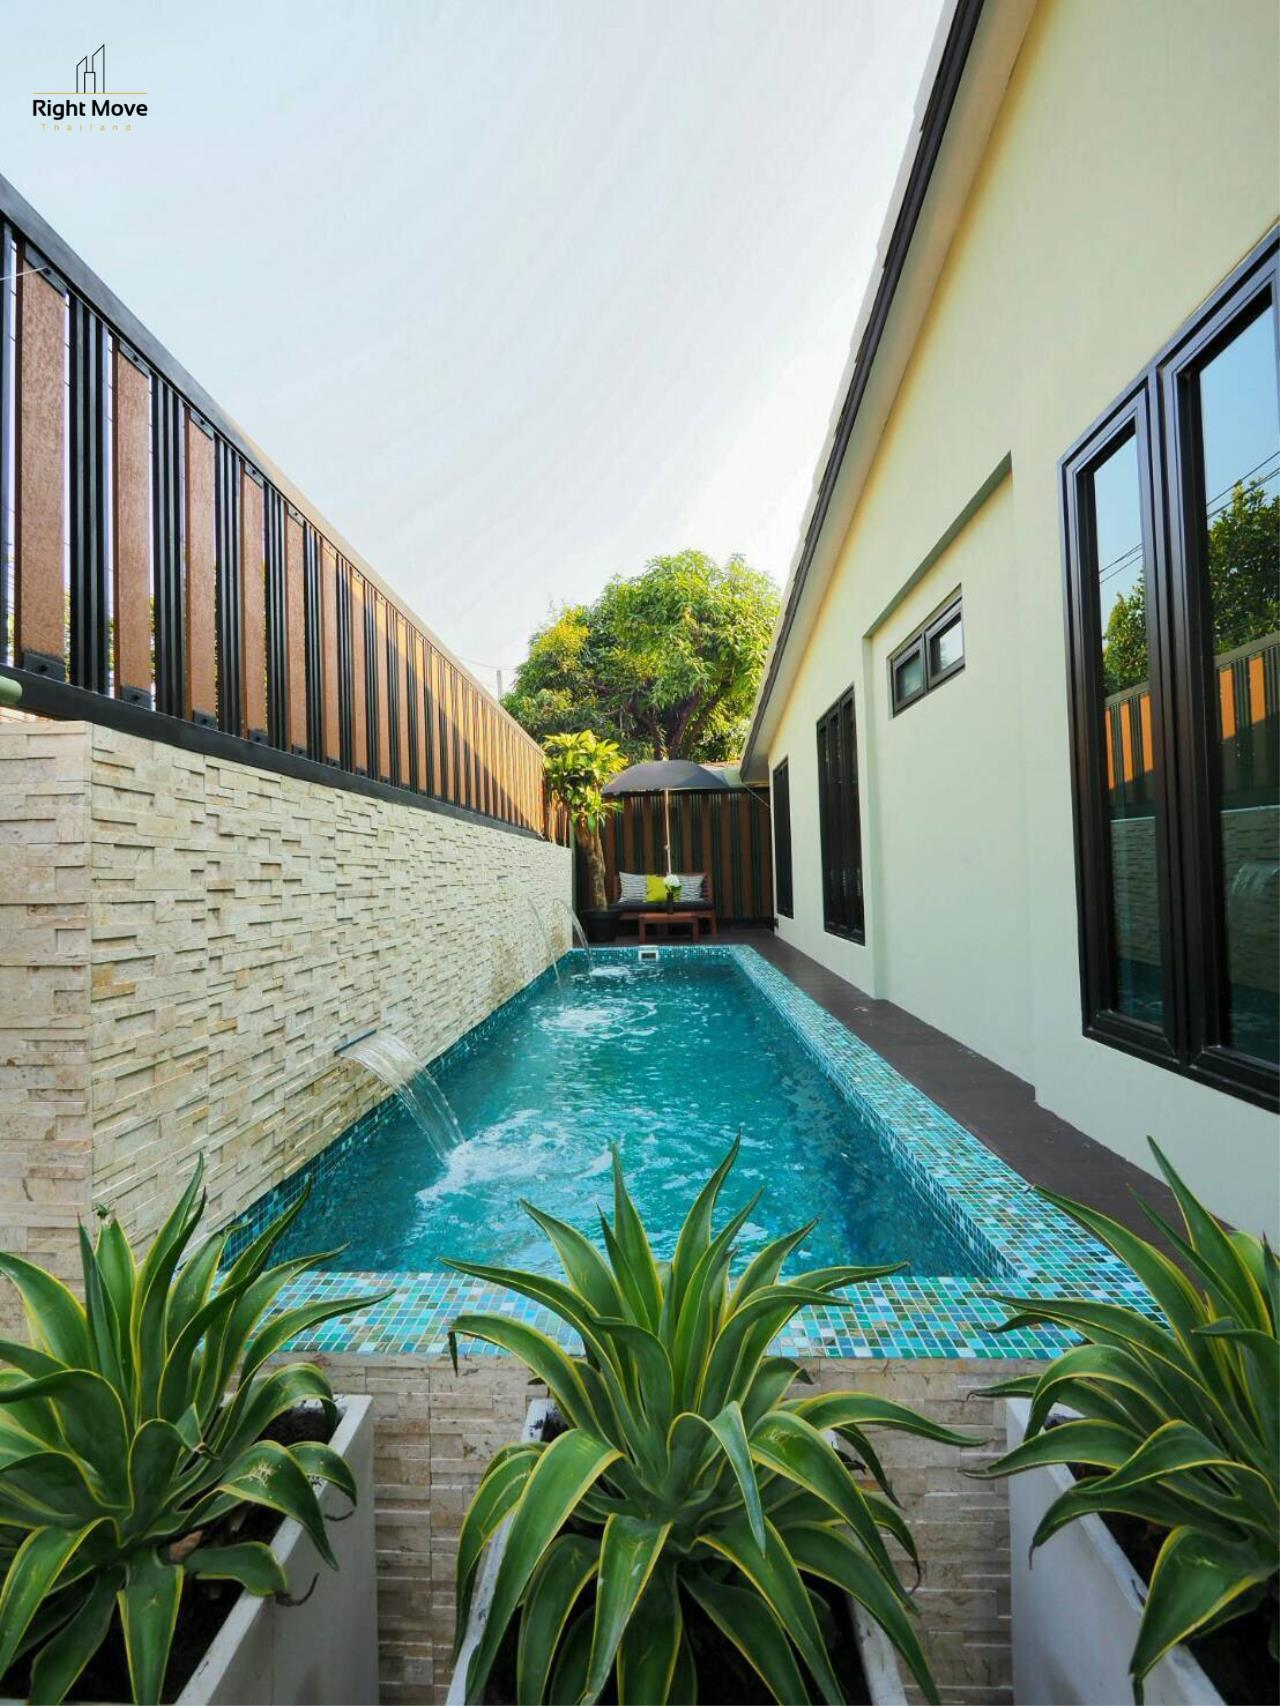 Right Move Thailand Agency's HR874 Single House For Sale 16,500,000 THB 2 Bedrooms 150 Sqm 3